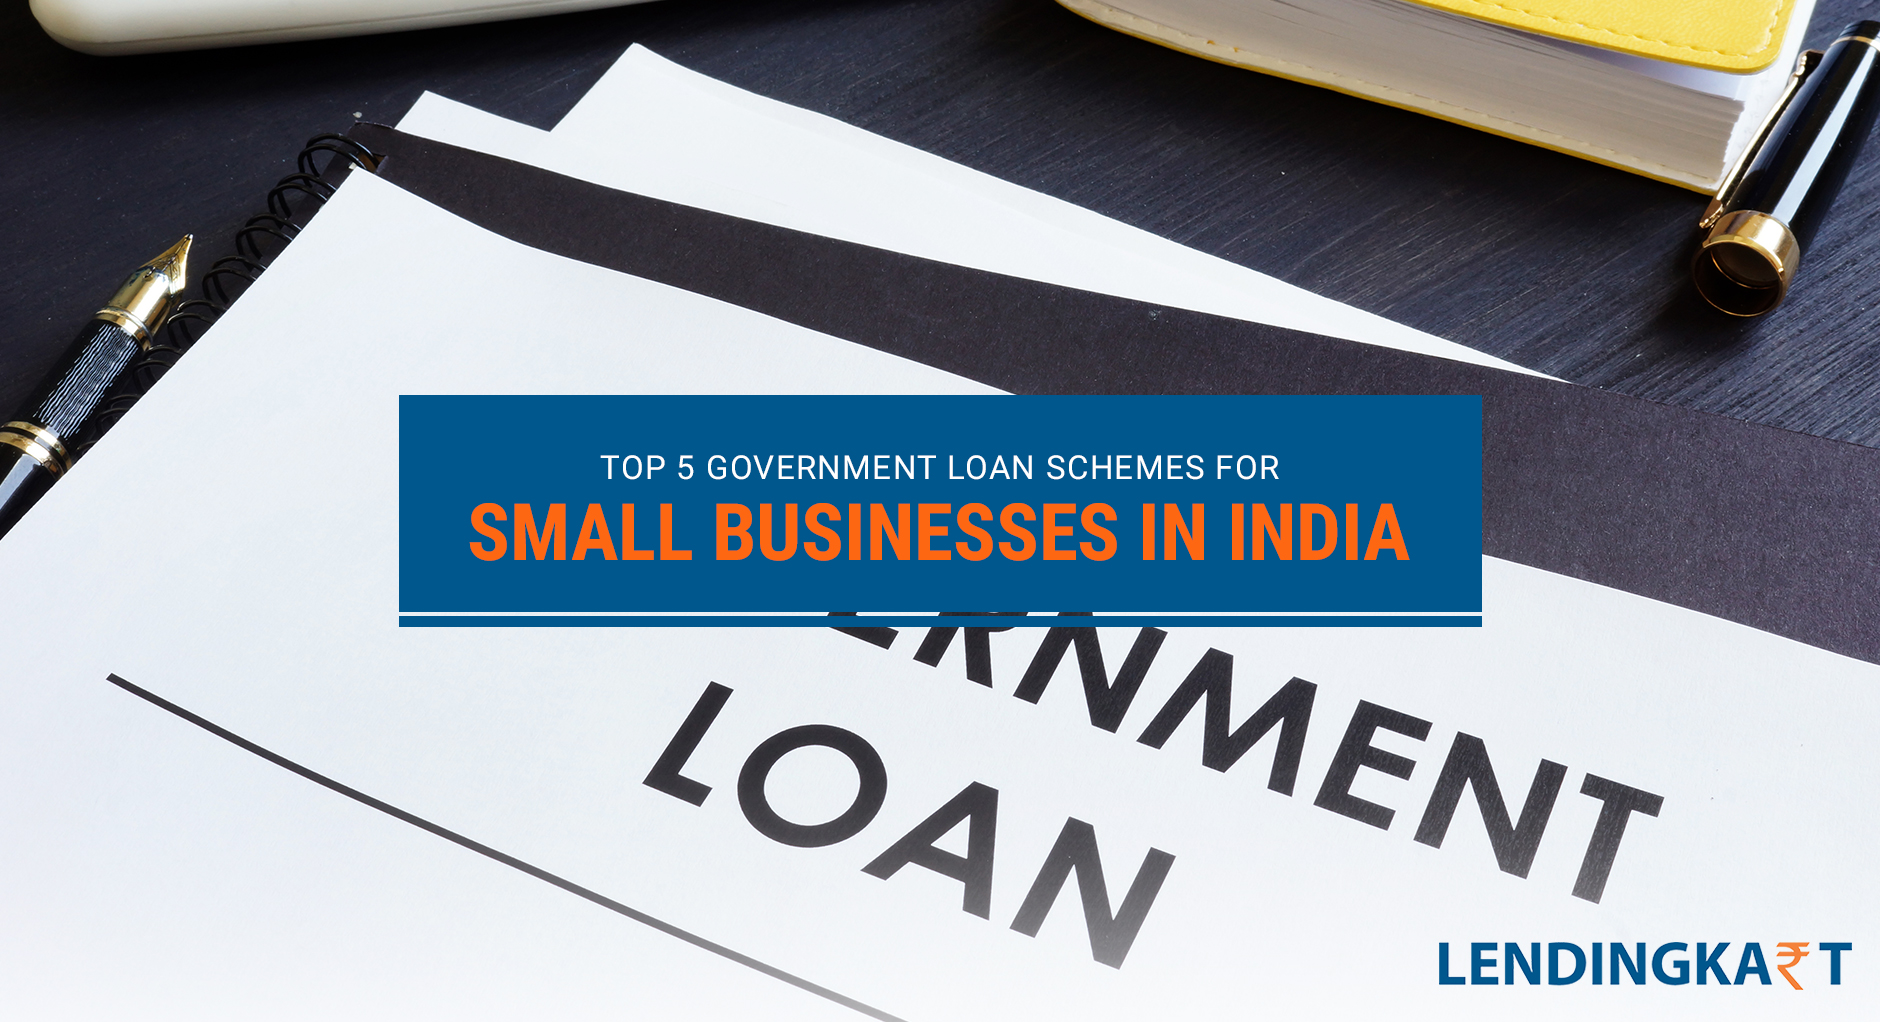 Top 5 Government Loan Schemes for Small Businesses India